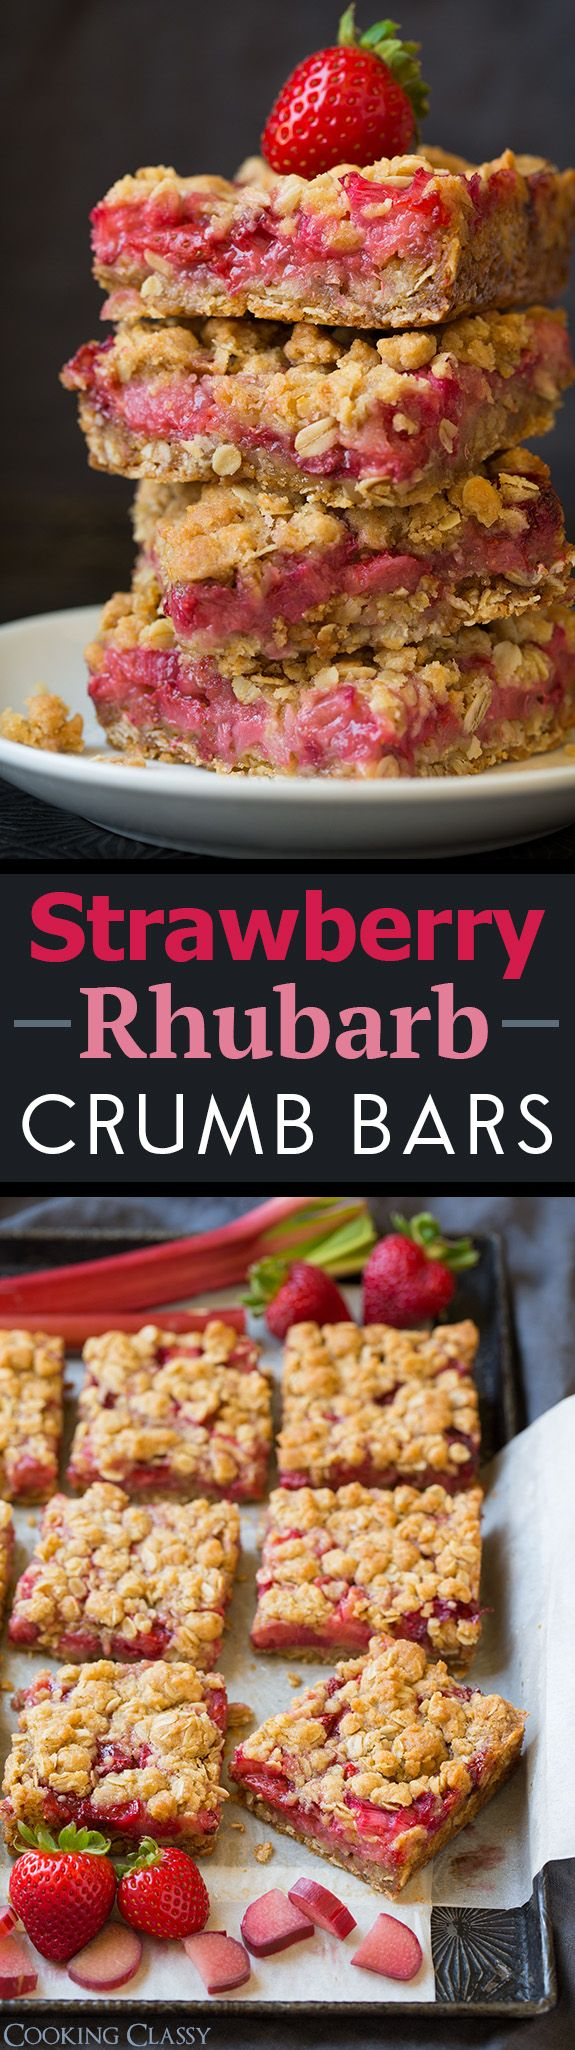 Strawberry Rhubarb Crumb Bars – one of my all time FAVORITE bar recipes!! I could stop eating them!